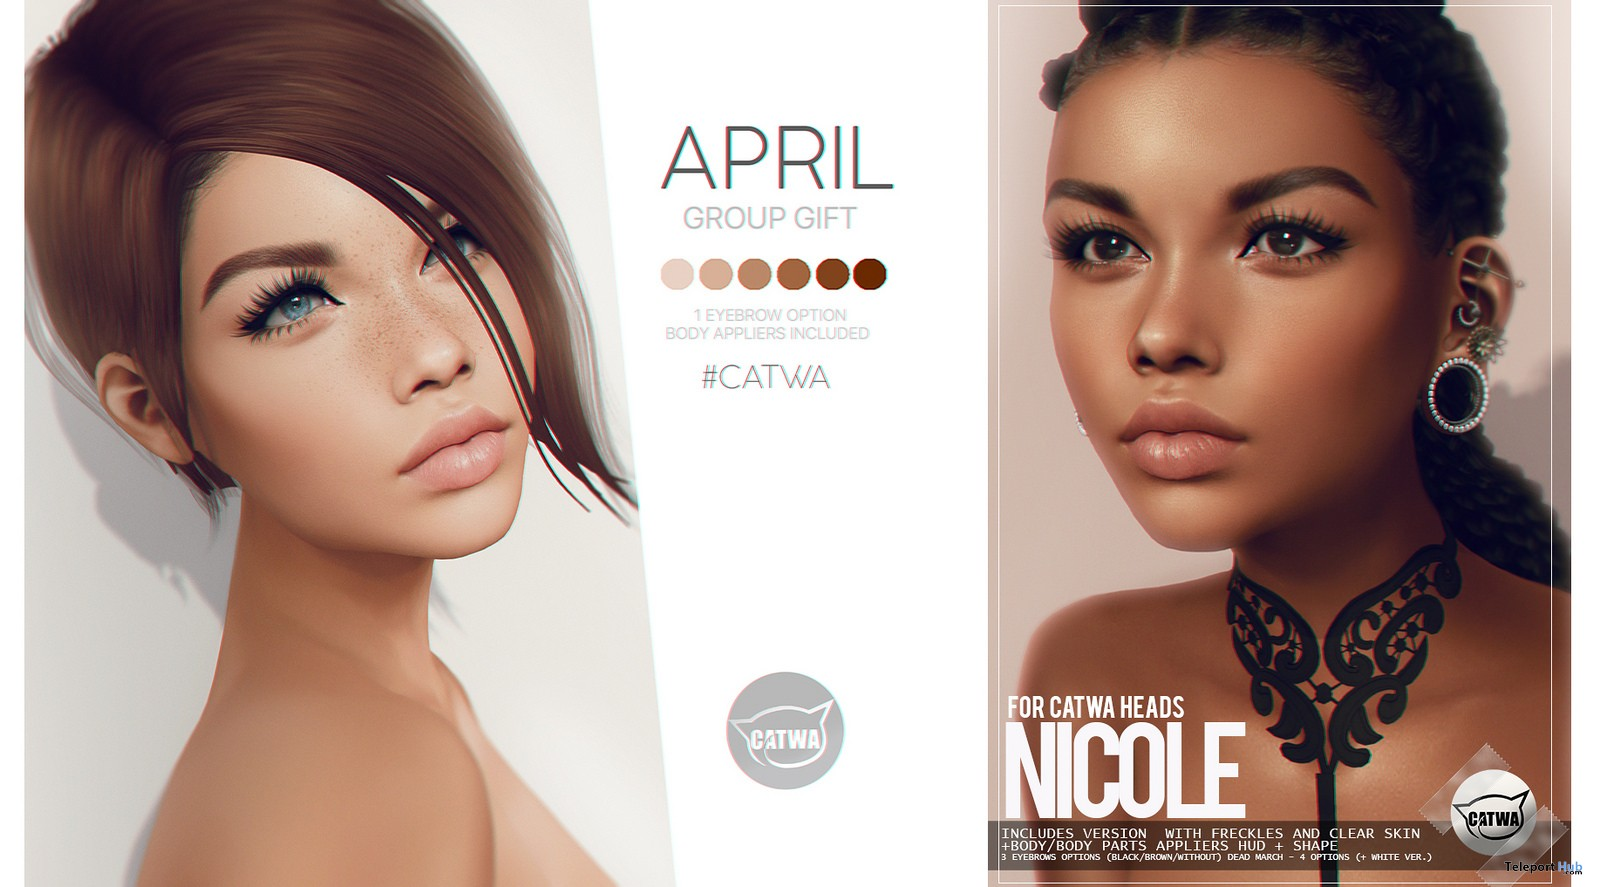 Nicole Skin Fatpack April 2018 Group Gift by PUMEC - Teleport Hub - teleporthub.com